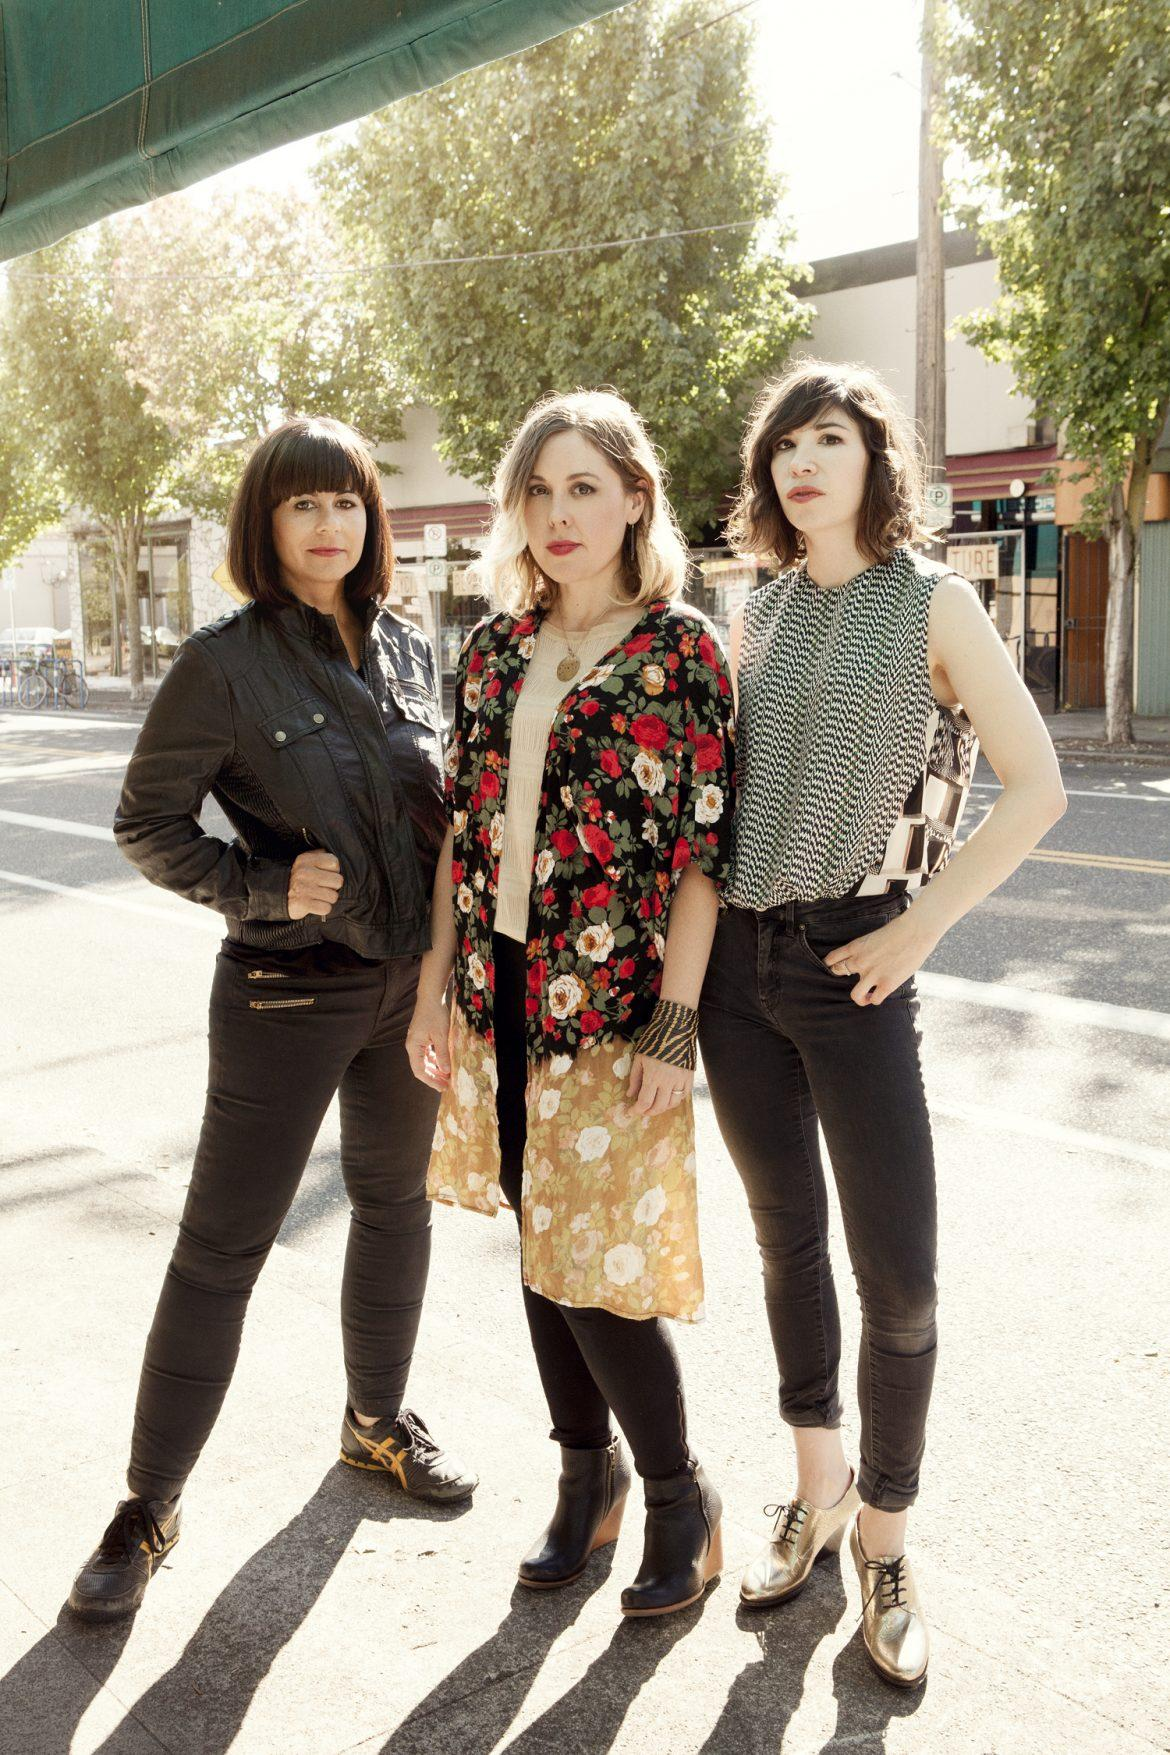 Sleater-Kinney+is+back+in+full+force+with+their+new+album%2C+No+Cities+to+Love.